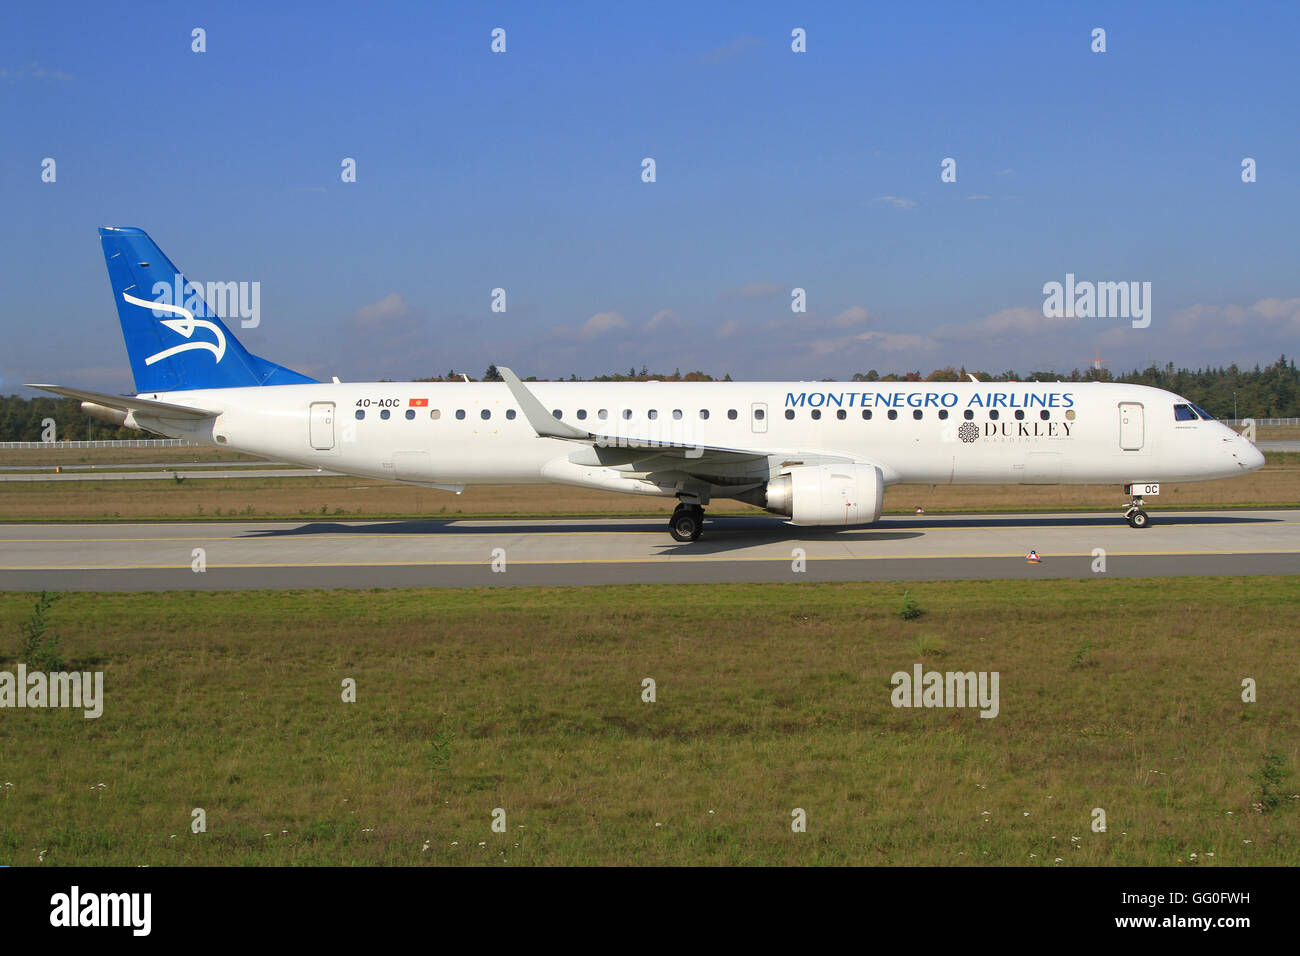 Frankfurt /Germany March 18, 2014: Embrear from Montenegro Airliners at Frankfurt Airport. - Stock Image